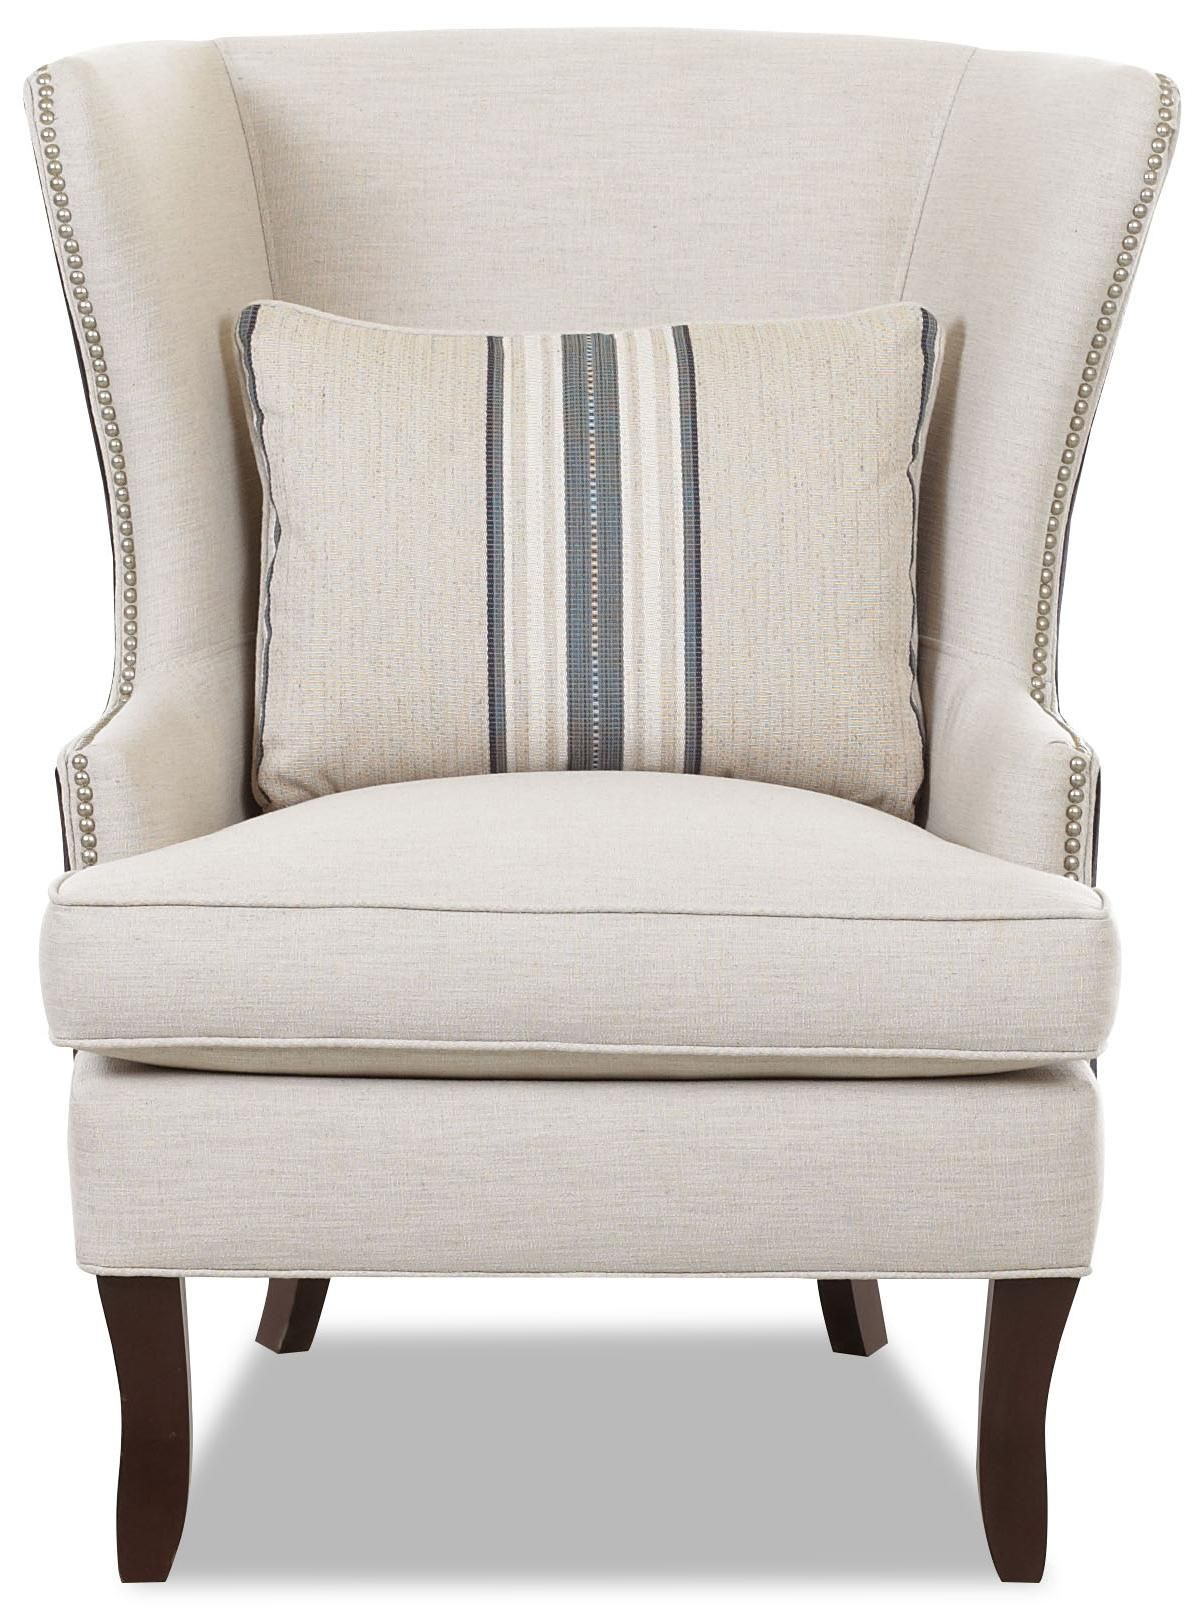 Wonderful Chairs And Accents Transitional Krauss Wing Chair With Nail Head Trim By  Klaussner At Dunk U0026 Bright Furniture